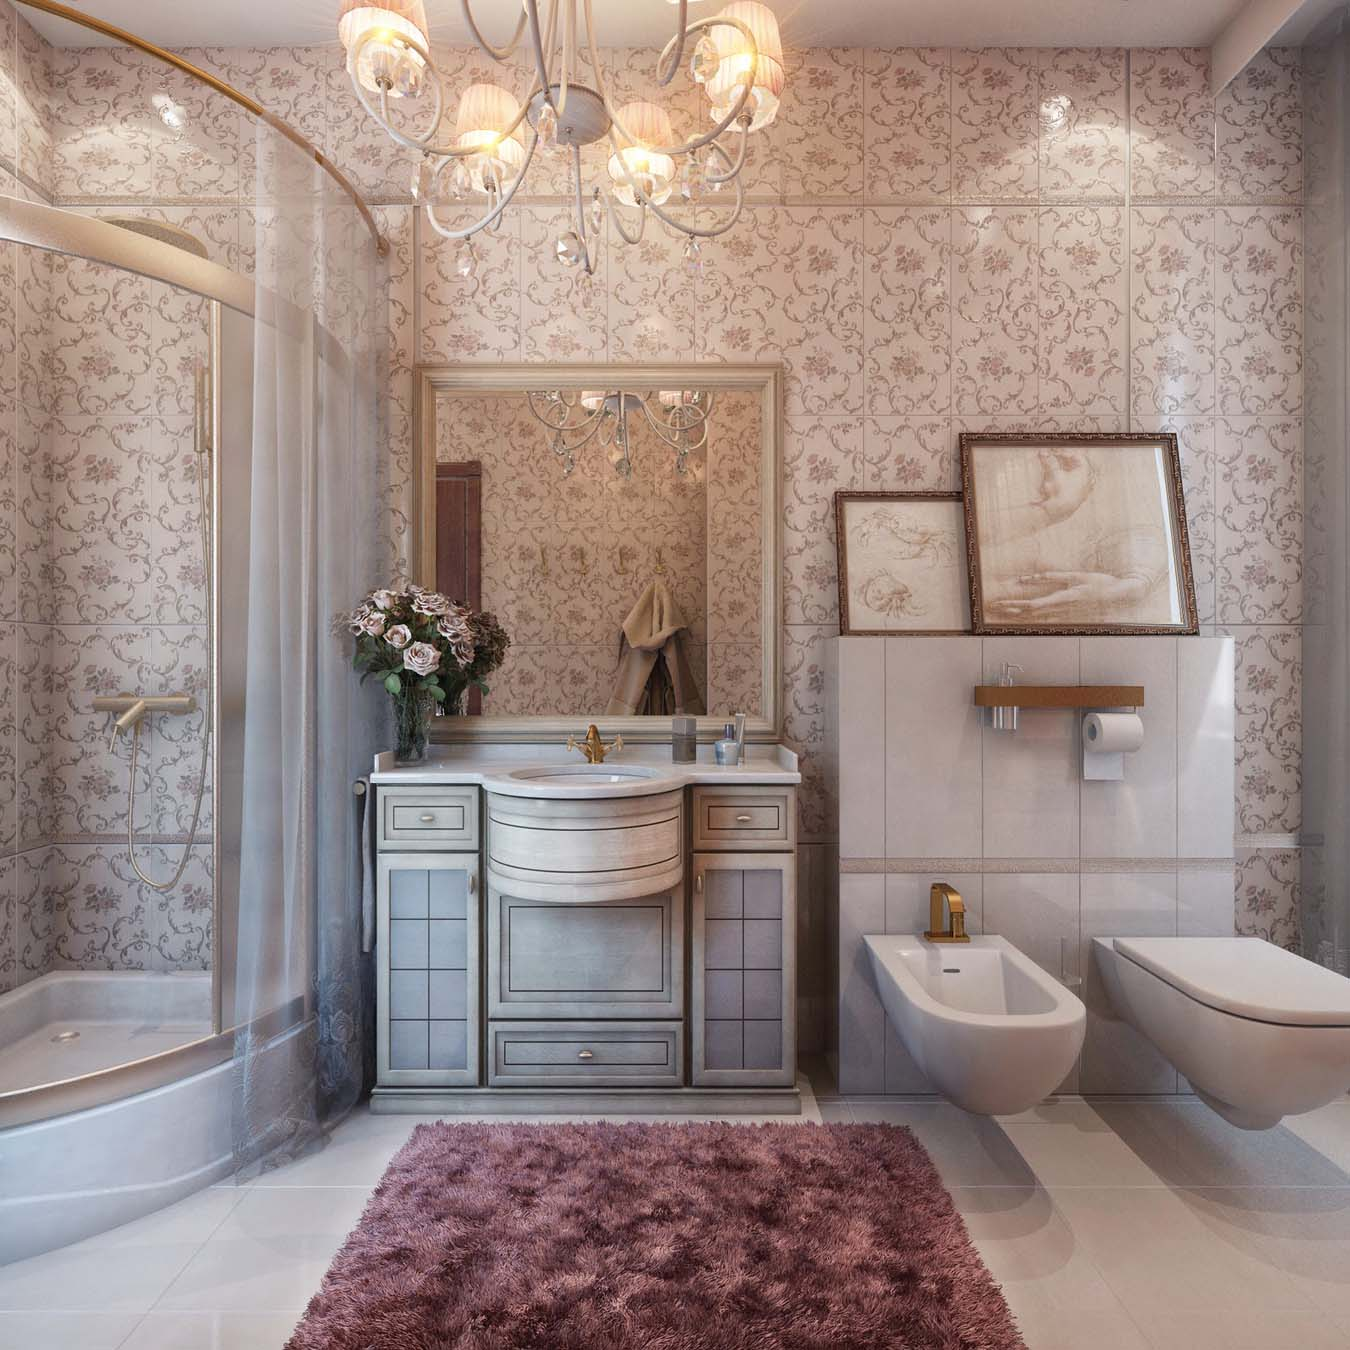 french classic interior of the bathroom - Bathroom Classic Design